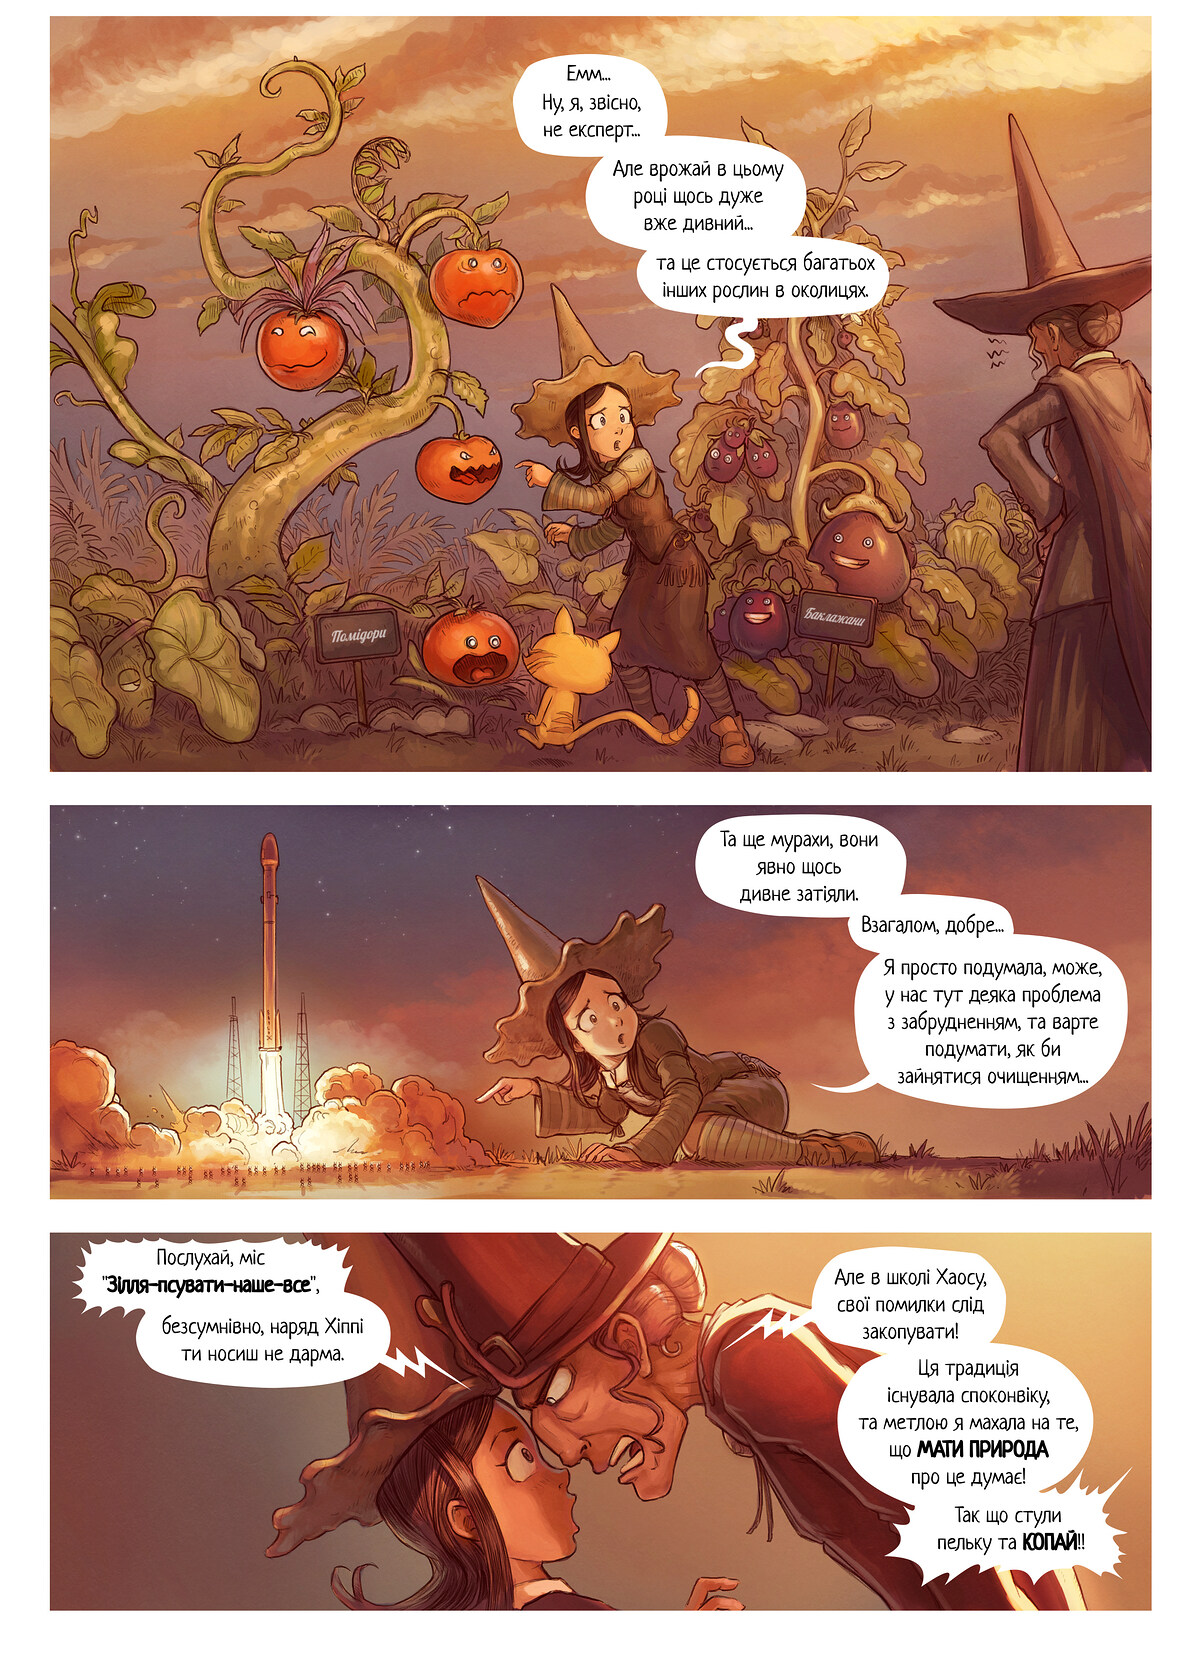 A webcomic page of Pepper&Carrot, епізод 19 [uk], стор. 2